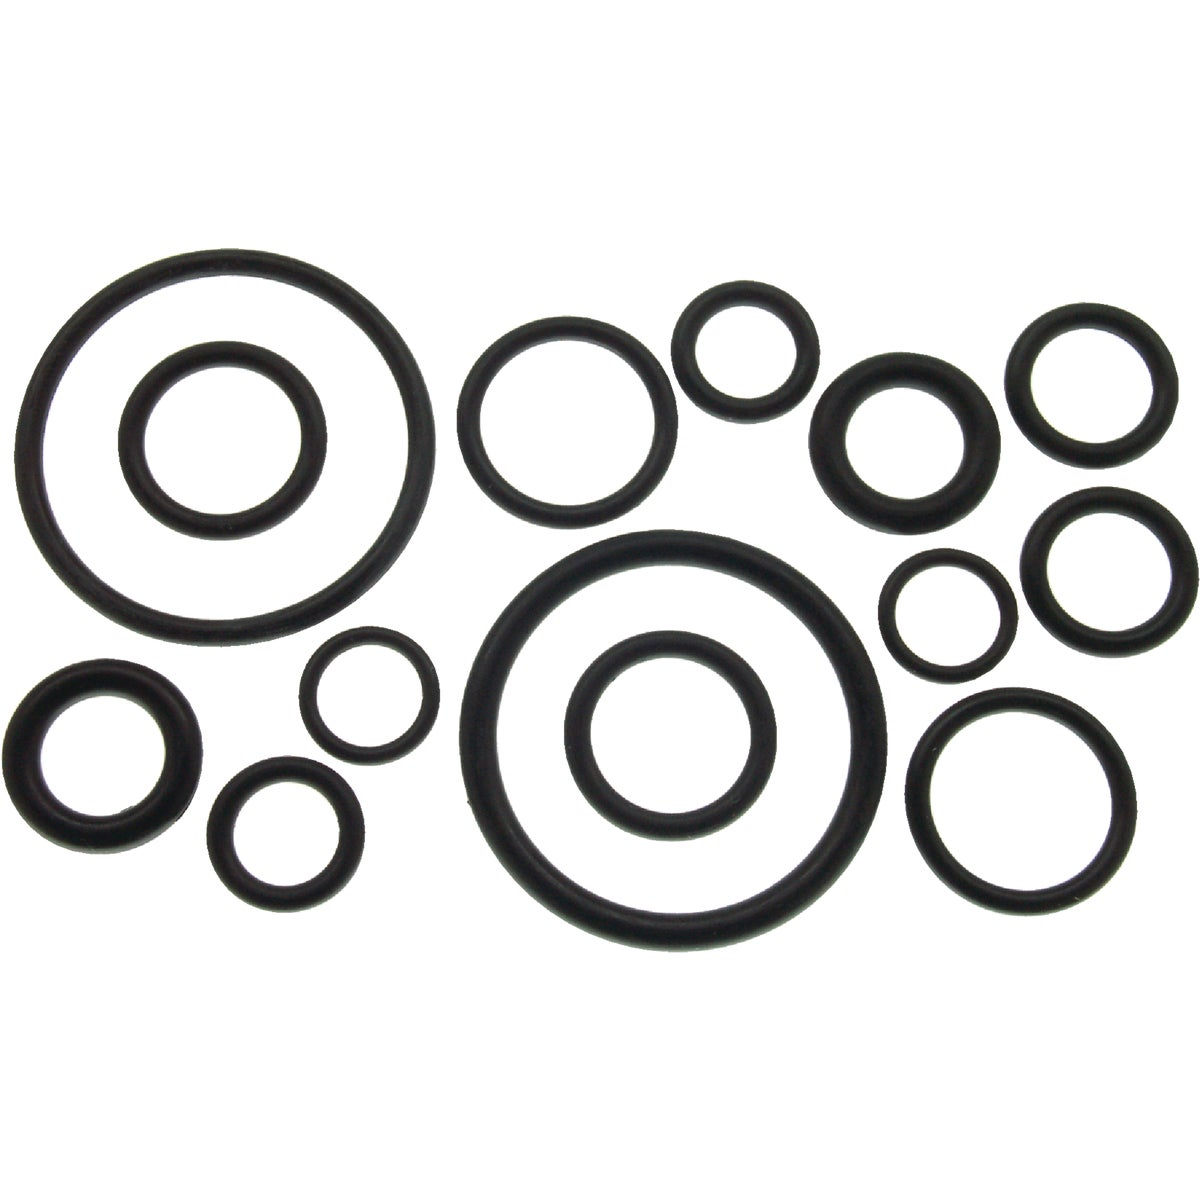 O-RING ASSORTMENT - 80788 by Danco Perfect Match